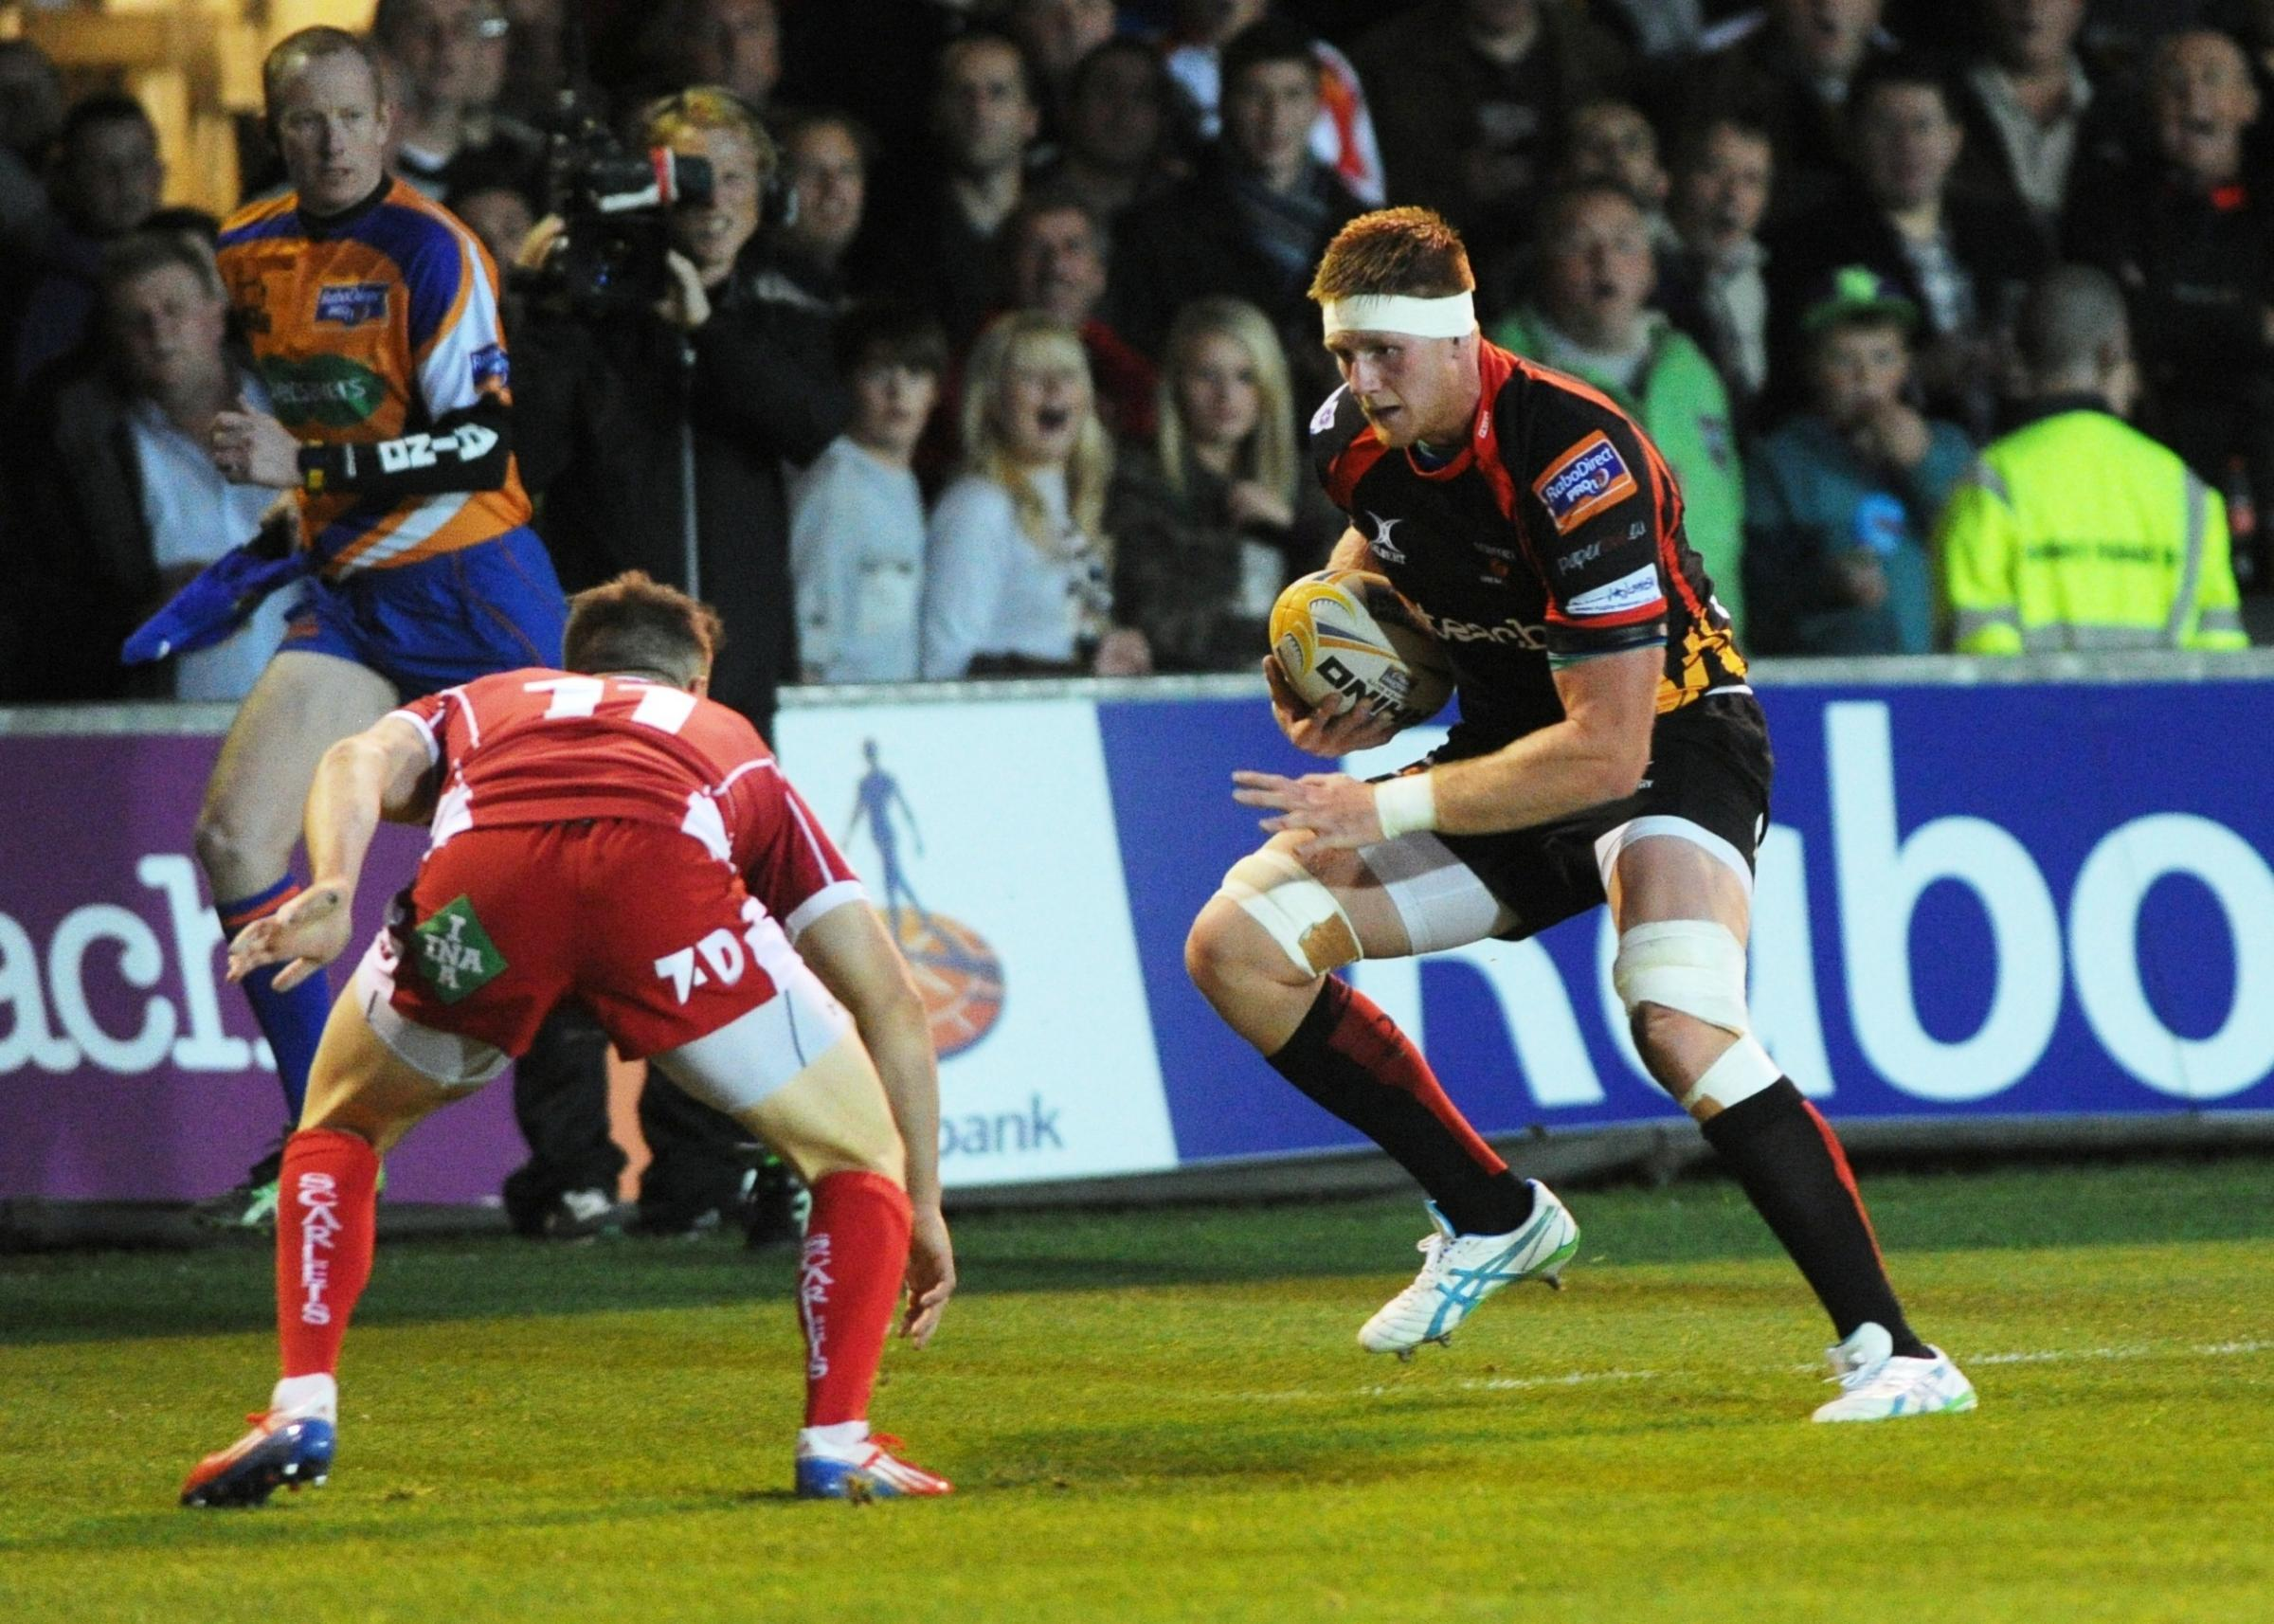 Coombs back to lead Dragons at Scarlets